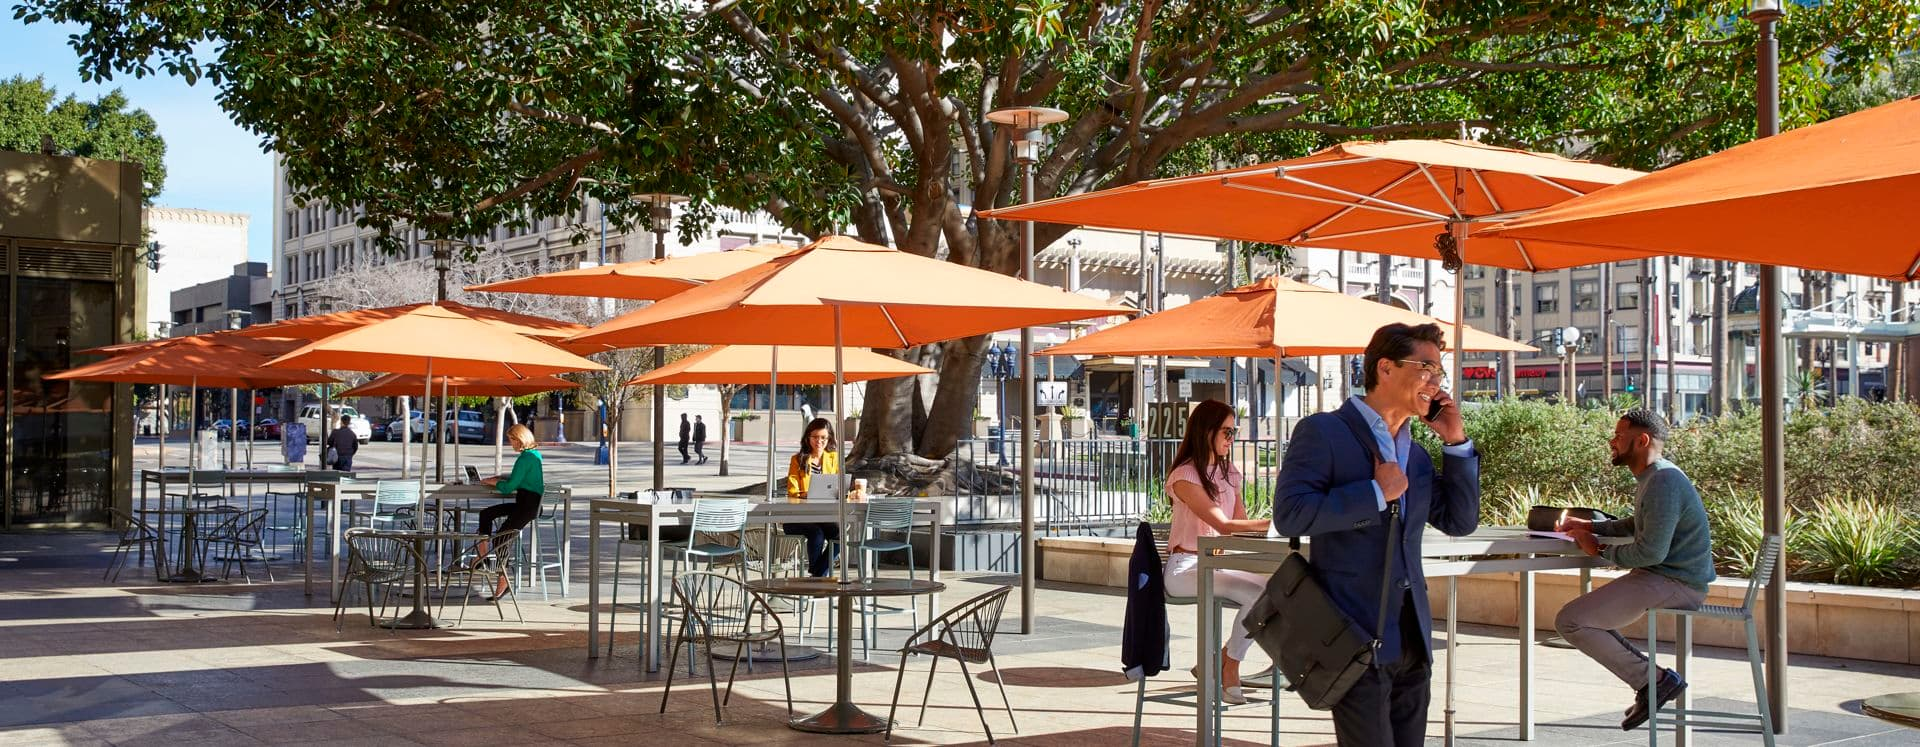 Lifestyle view of outdoor workspace at 225 Broadway in San Diego, CA.